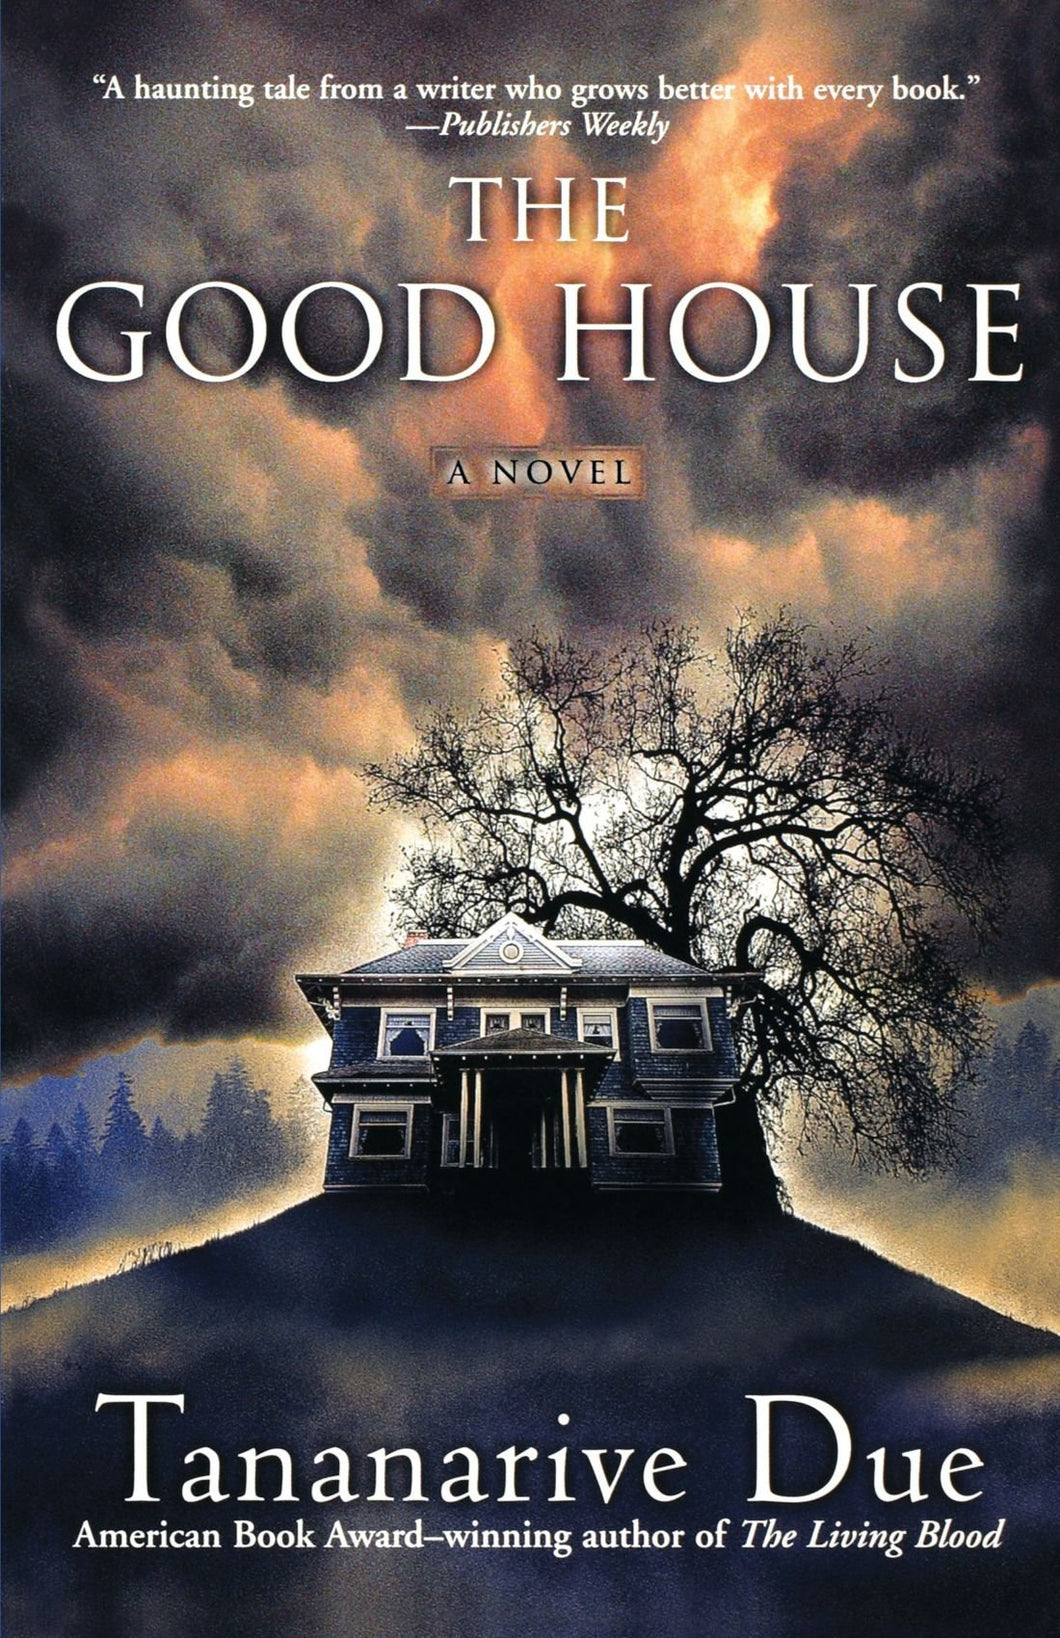 Good House by Tananarive Due